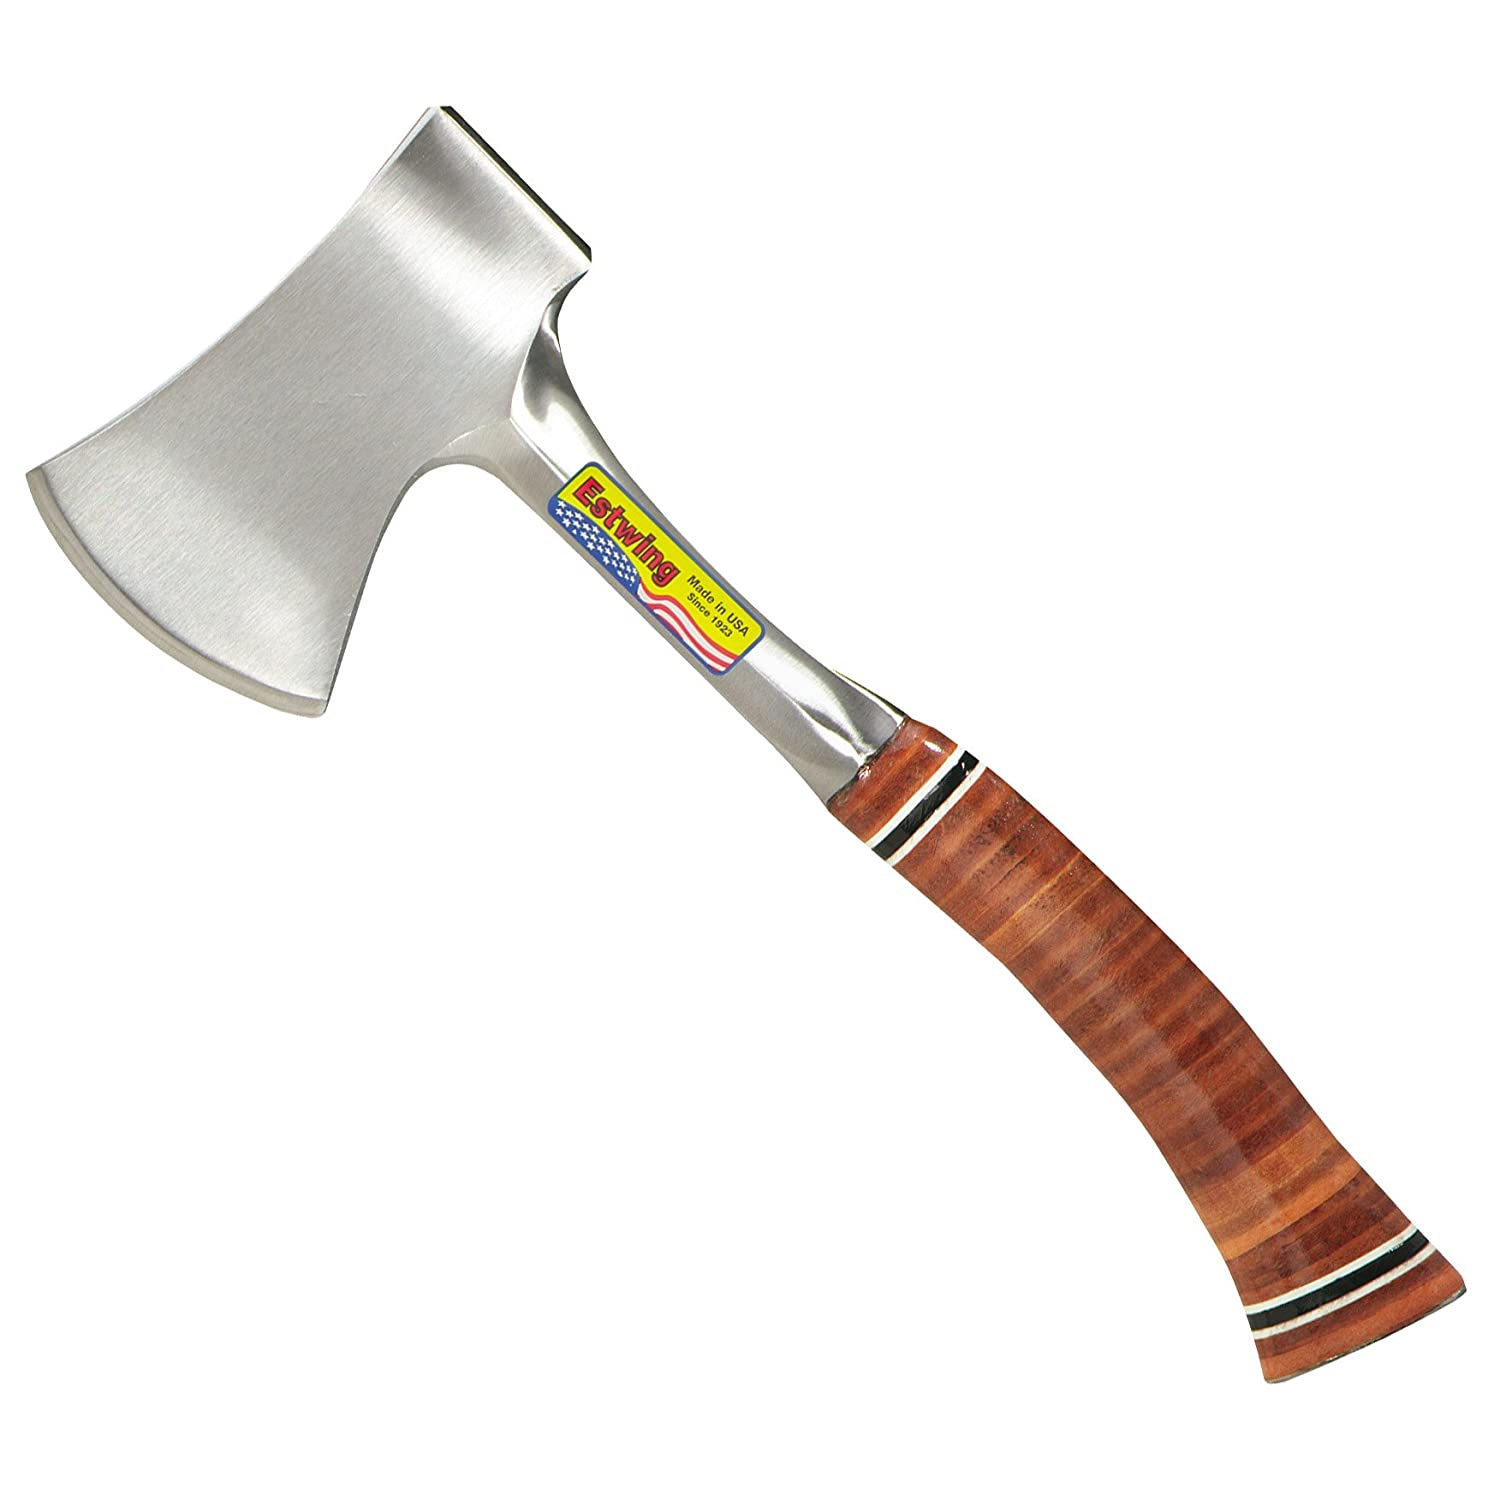 Estwing Special Edition Sportsman's Axe - 14